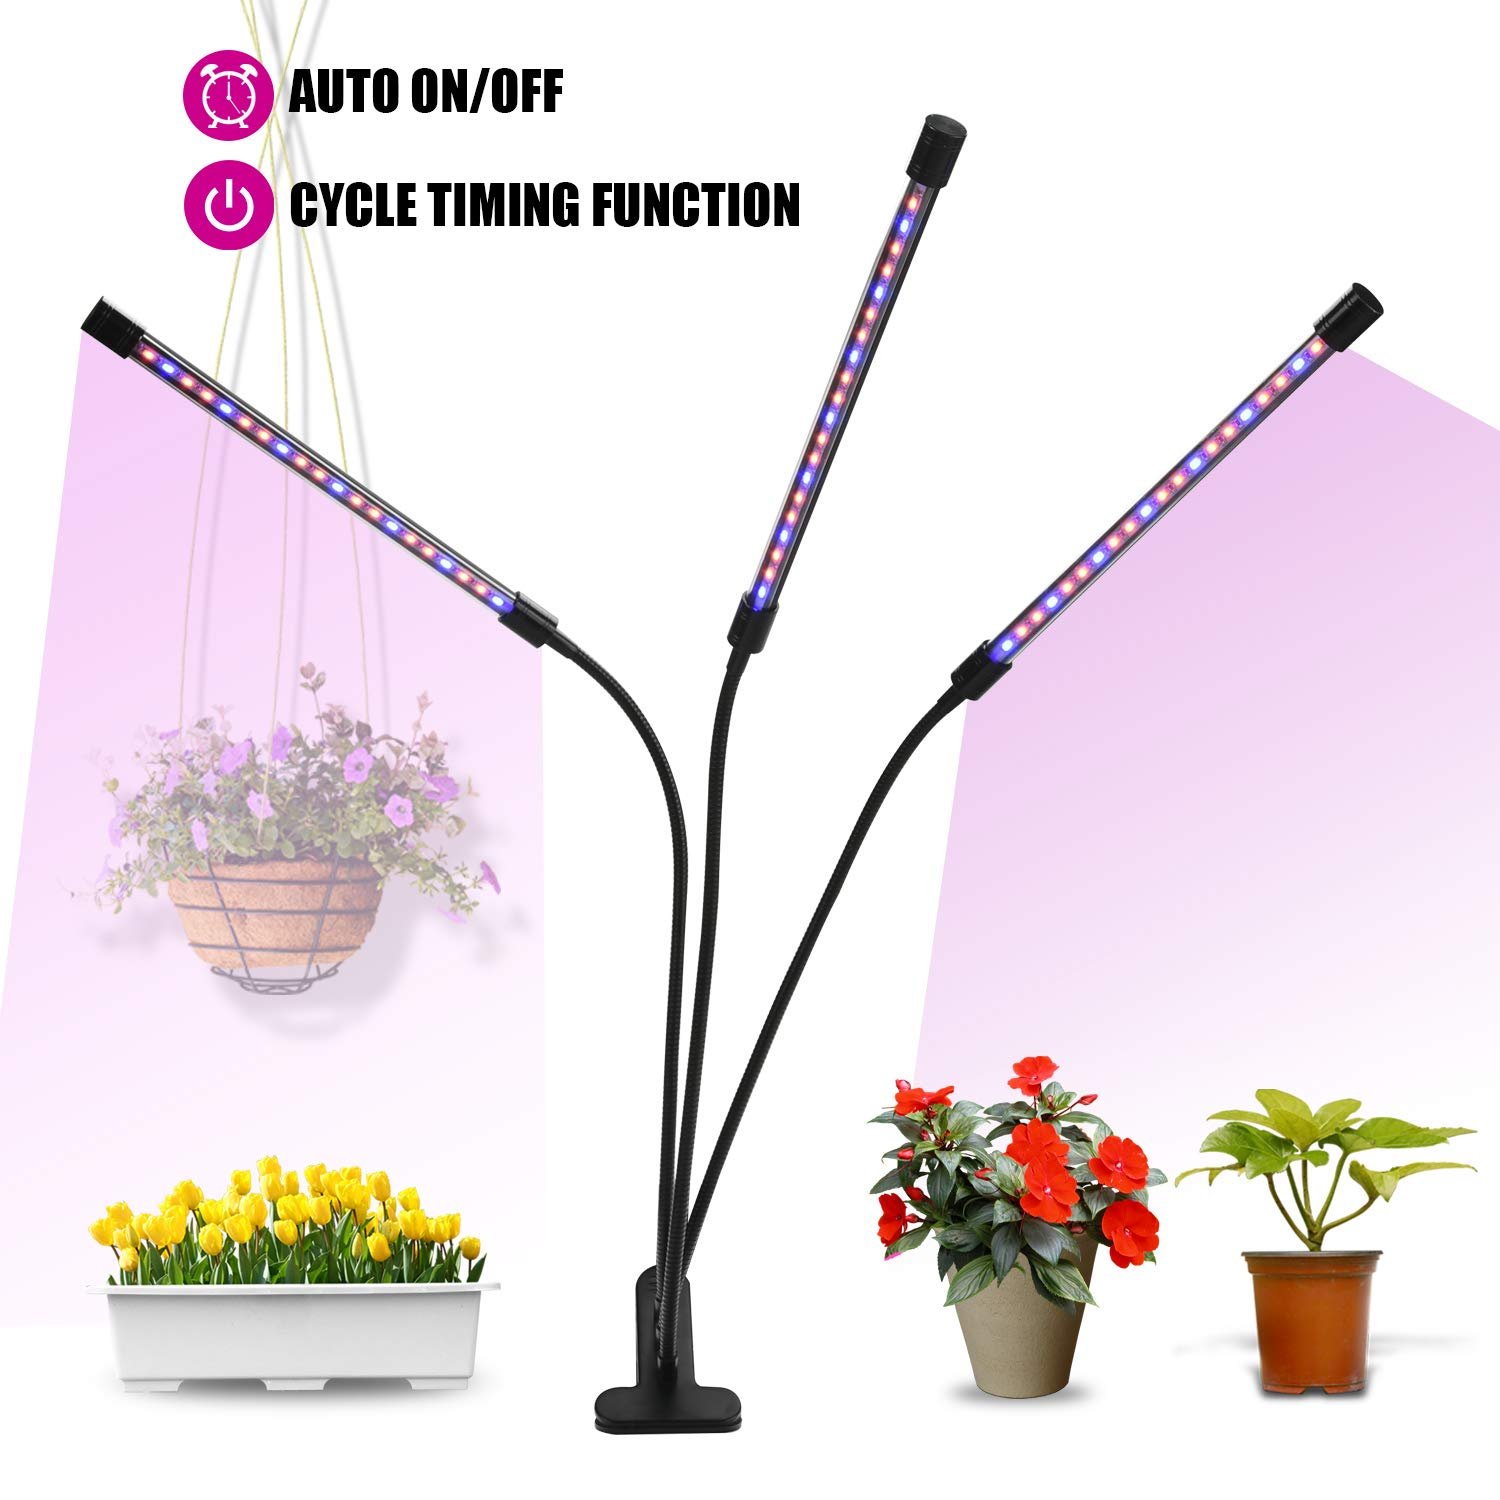 Grow Light, 30W Tri Head Timing LED Plant Grow Lights for Indoor Plants with Red Blue Spectrum, Professional Sunlight Grow Lamp for Seeds Starting Small House Plants Seedlings Growing, Adjustable